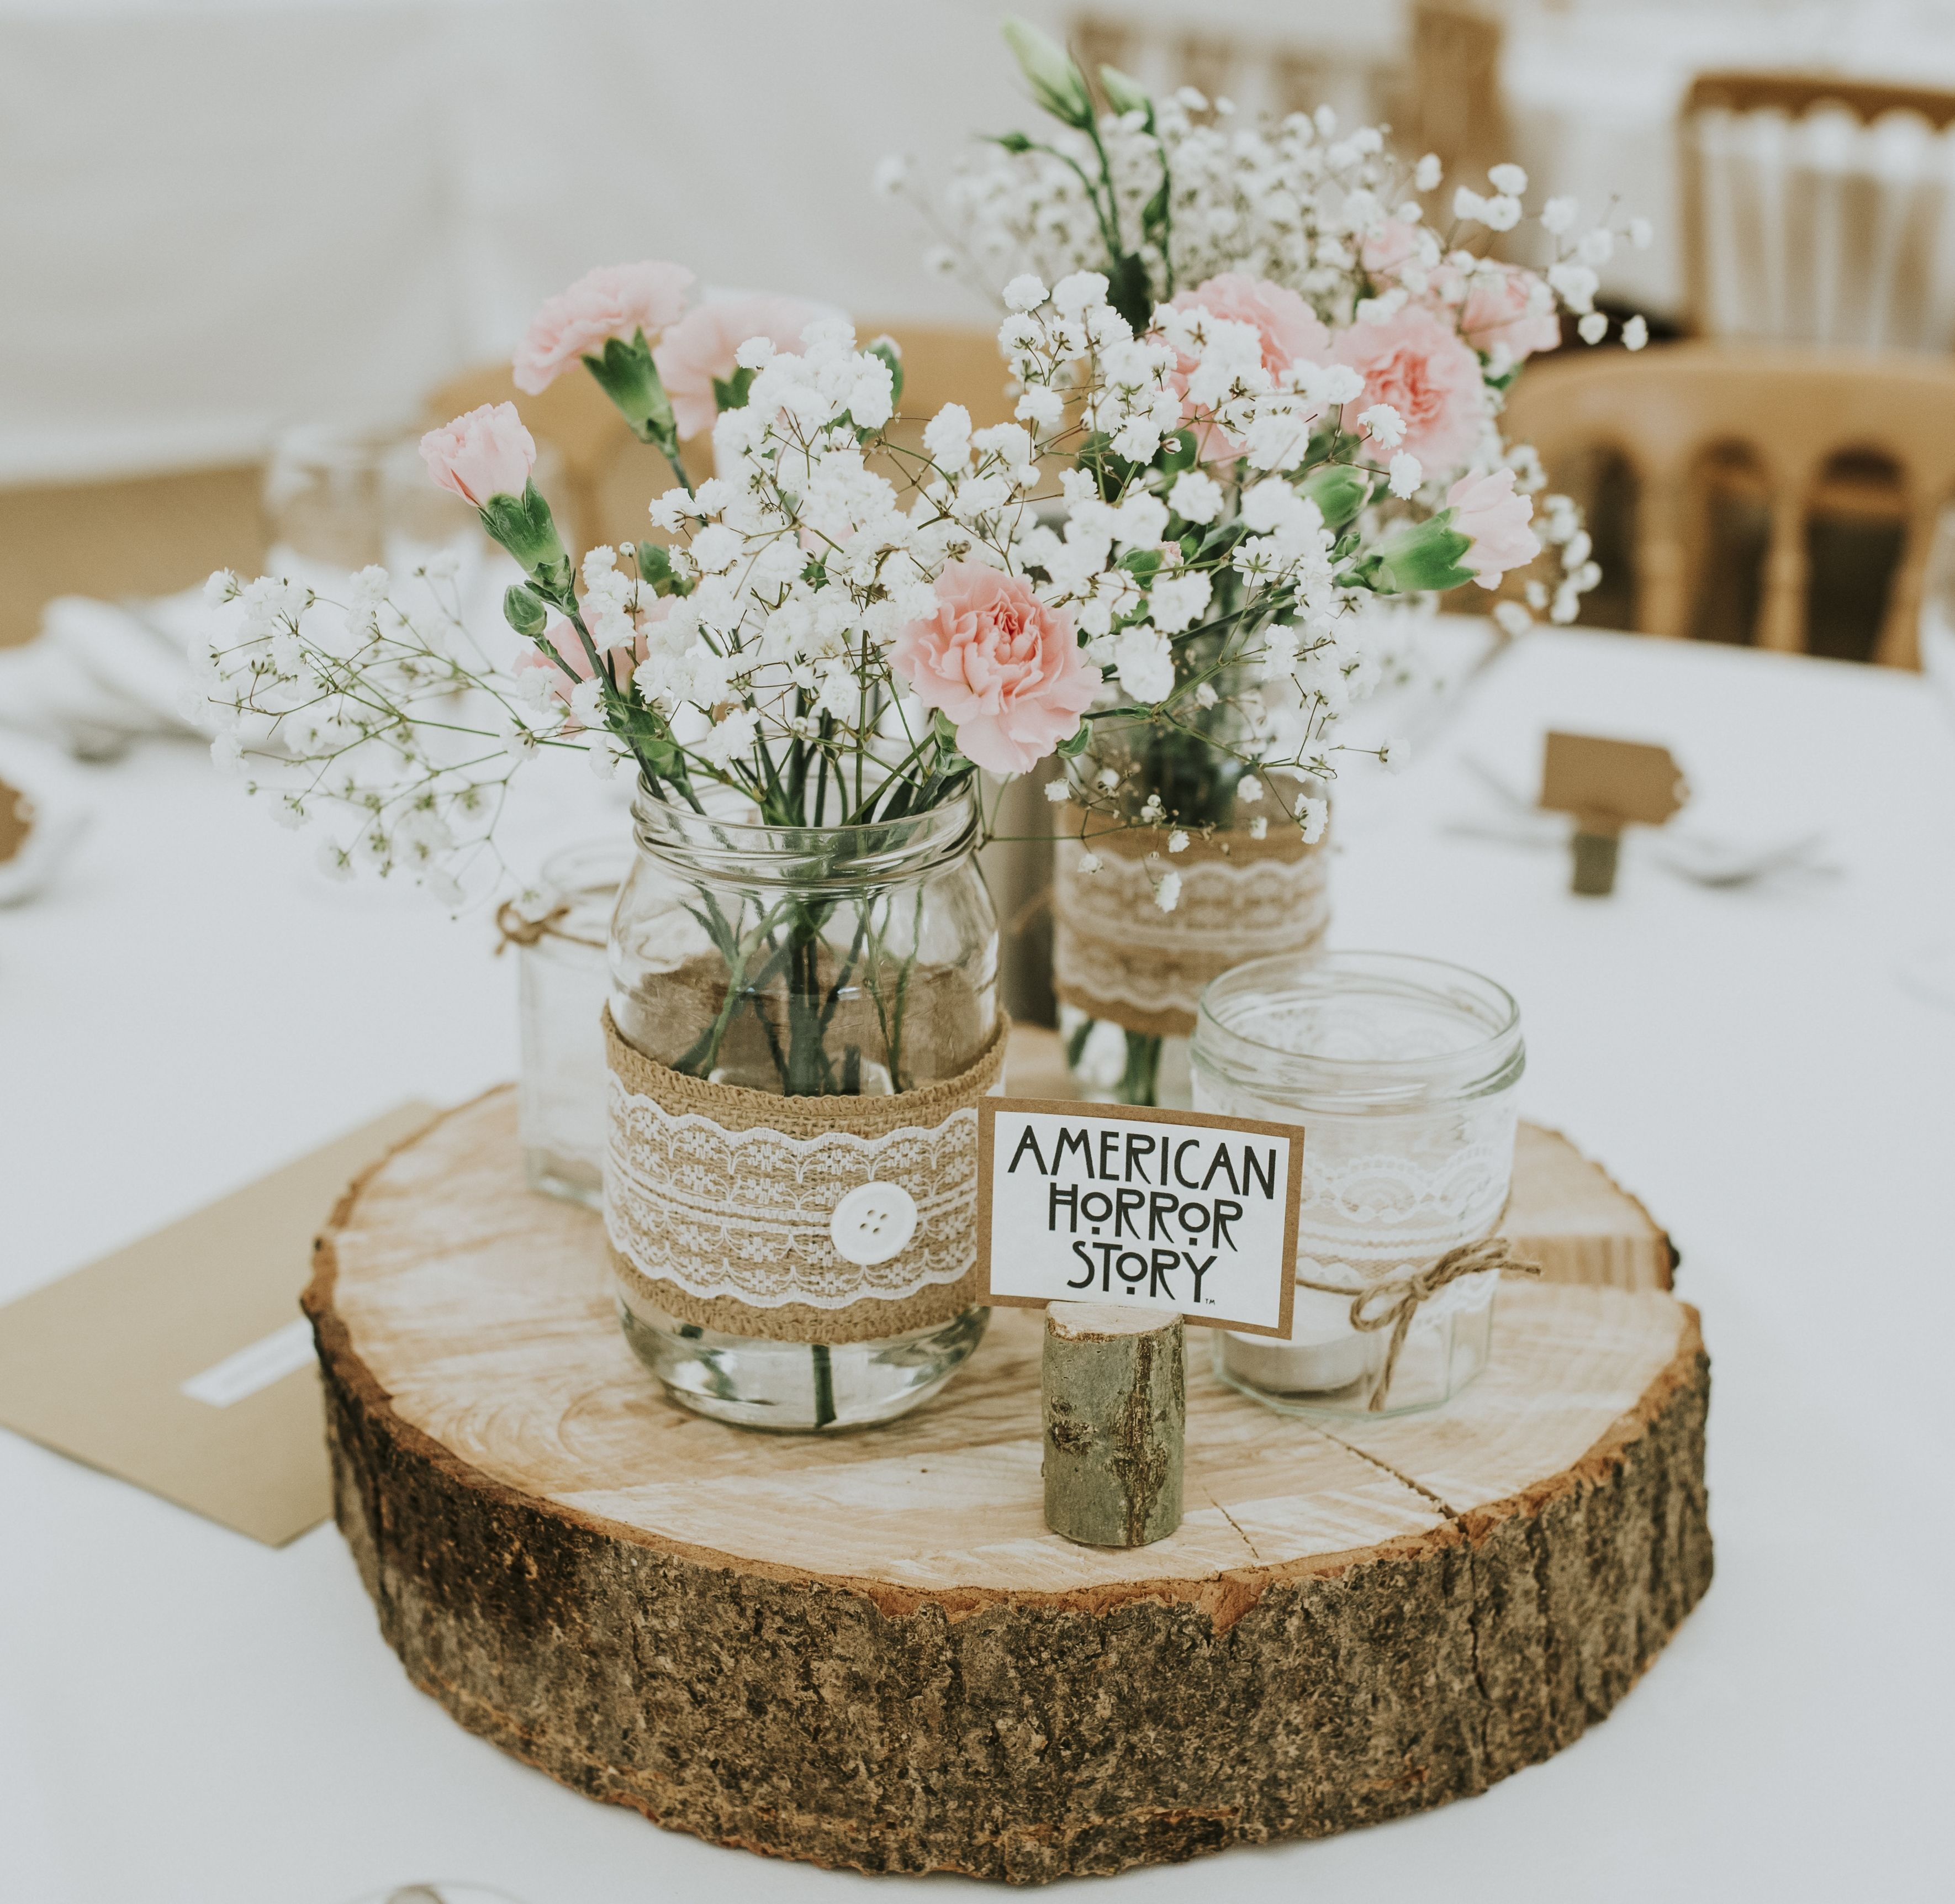 Wedding Centerpiece: Jam jars, hessian, lace on log slices ...